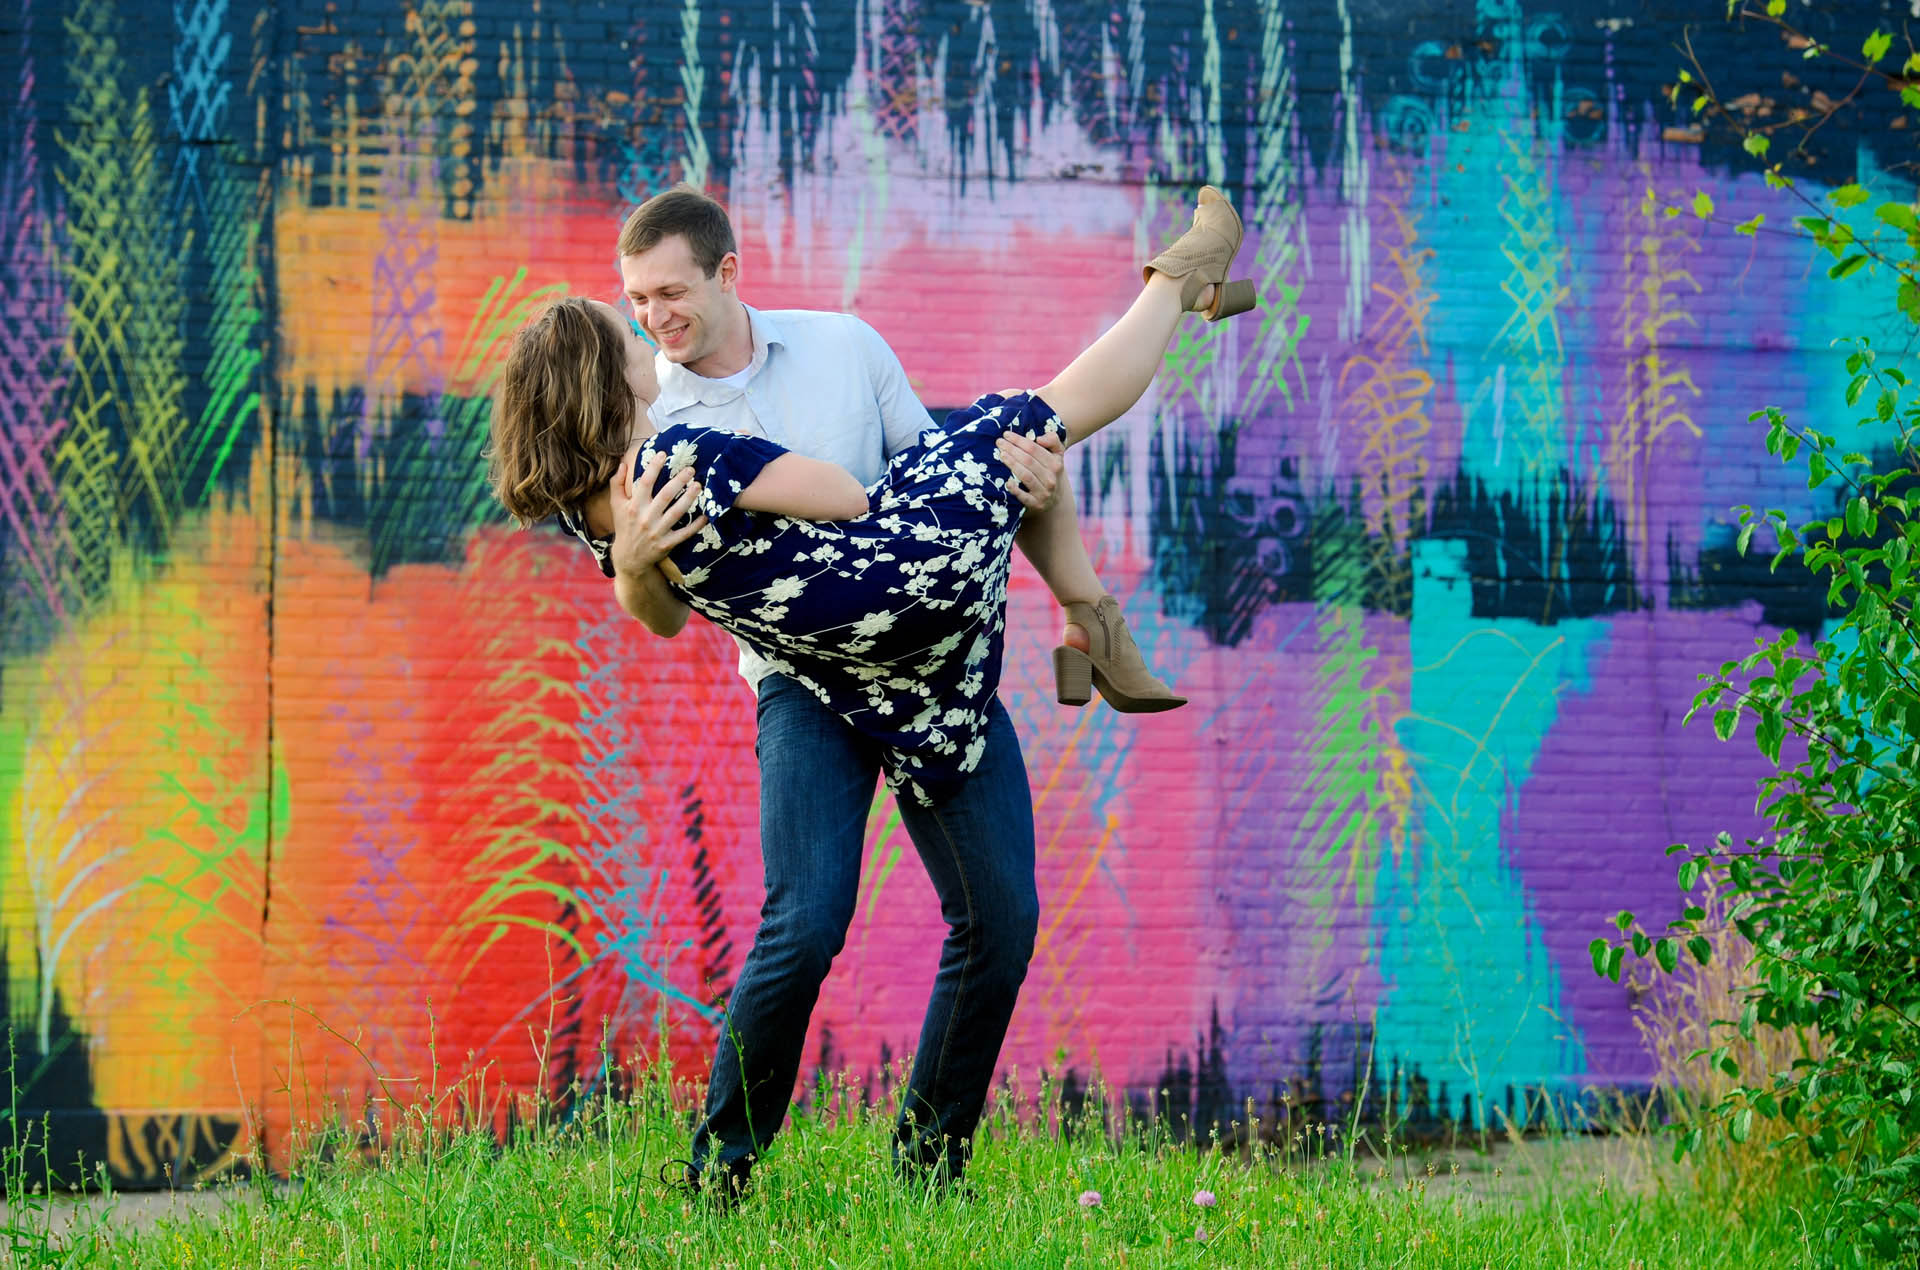 Best Detroit lifestyles photographer uses what's available on the scene to create unique kids and couples photos like this photo shoot at a local street art and murals in Detroit, Michigan.